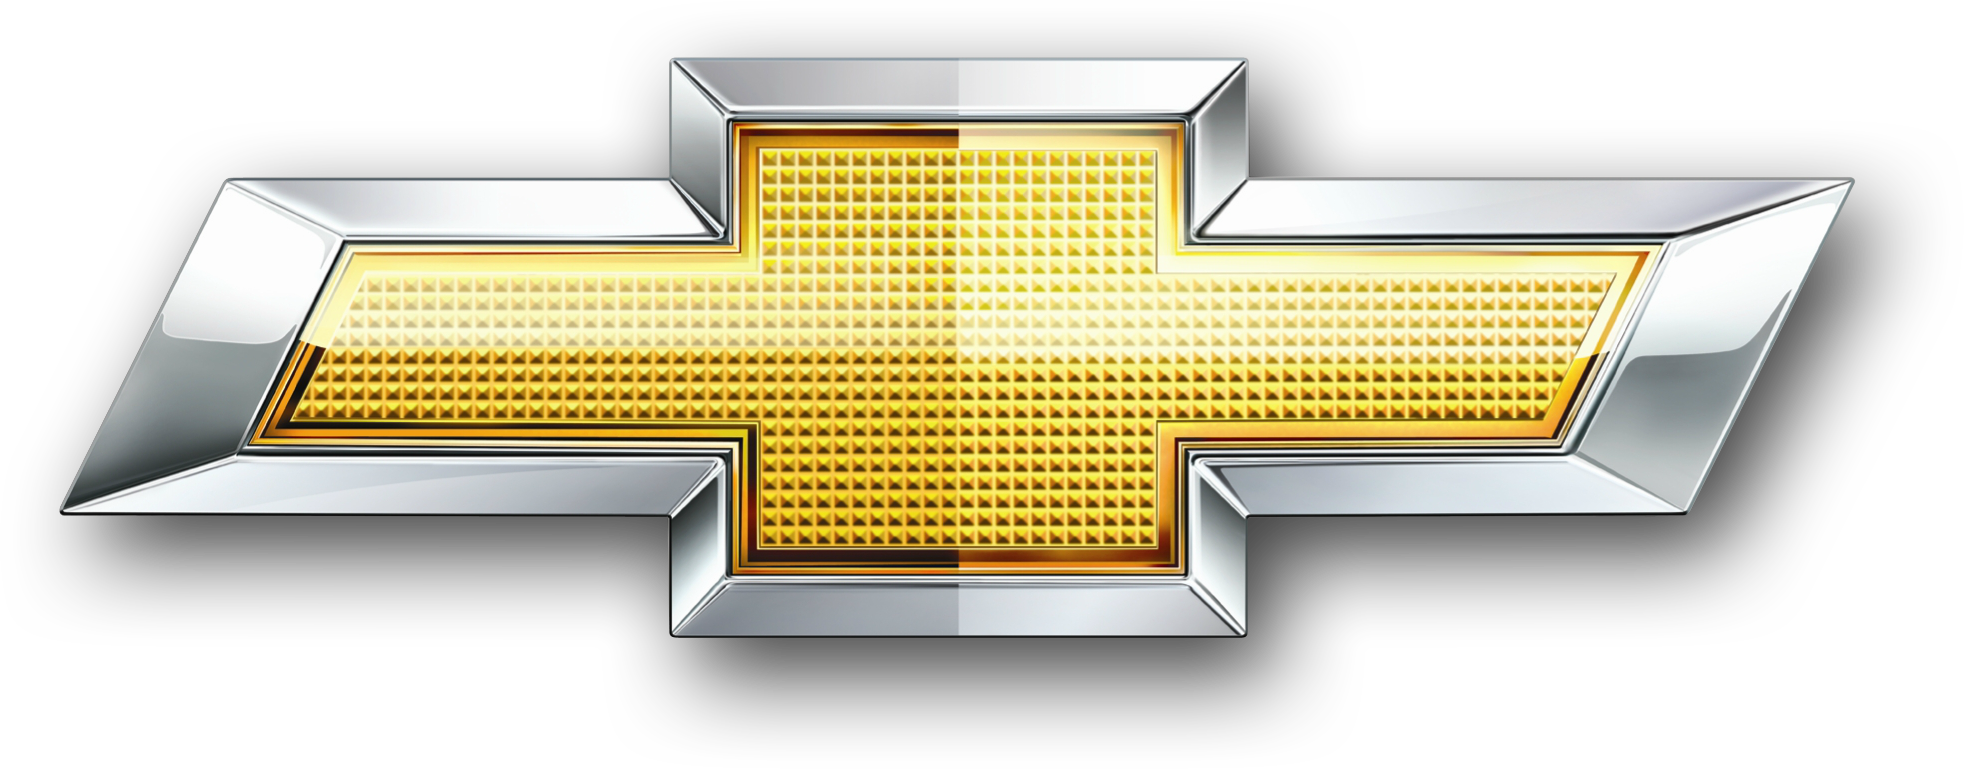 chevrolet-logo-transparent-download